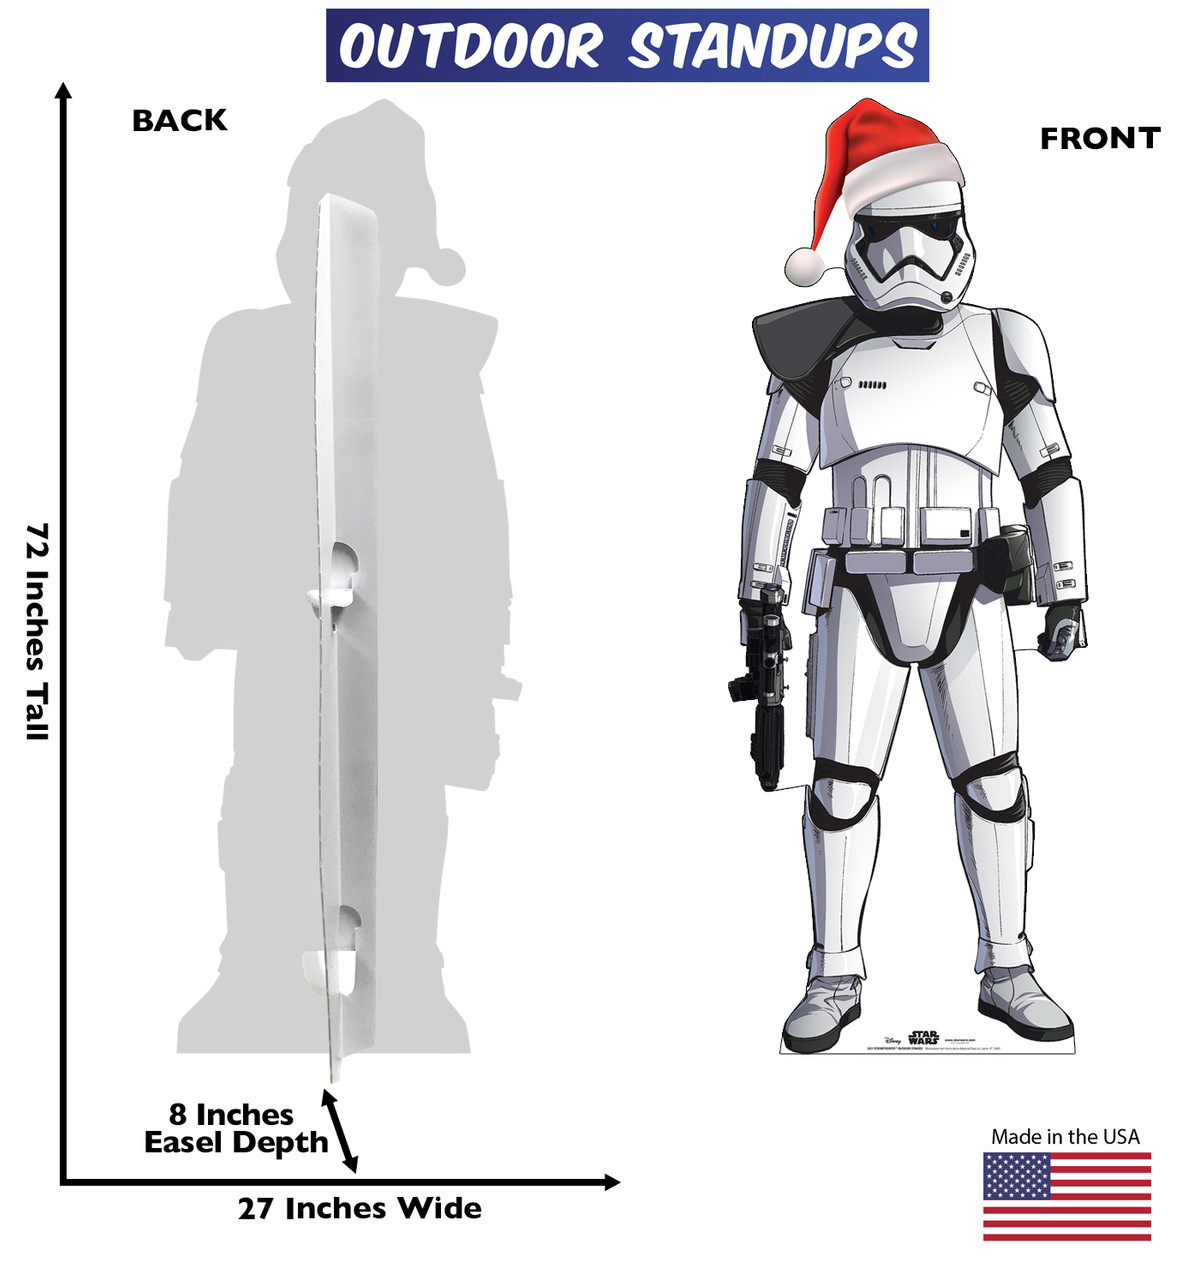 Coroplast outdoor standee of Stormtrooper with holiday hat and front and back dimensions.